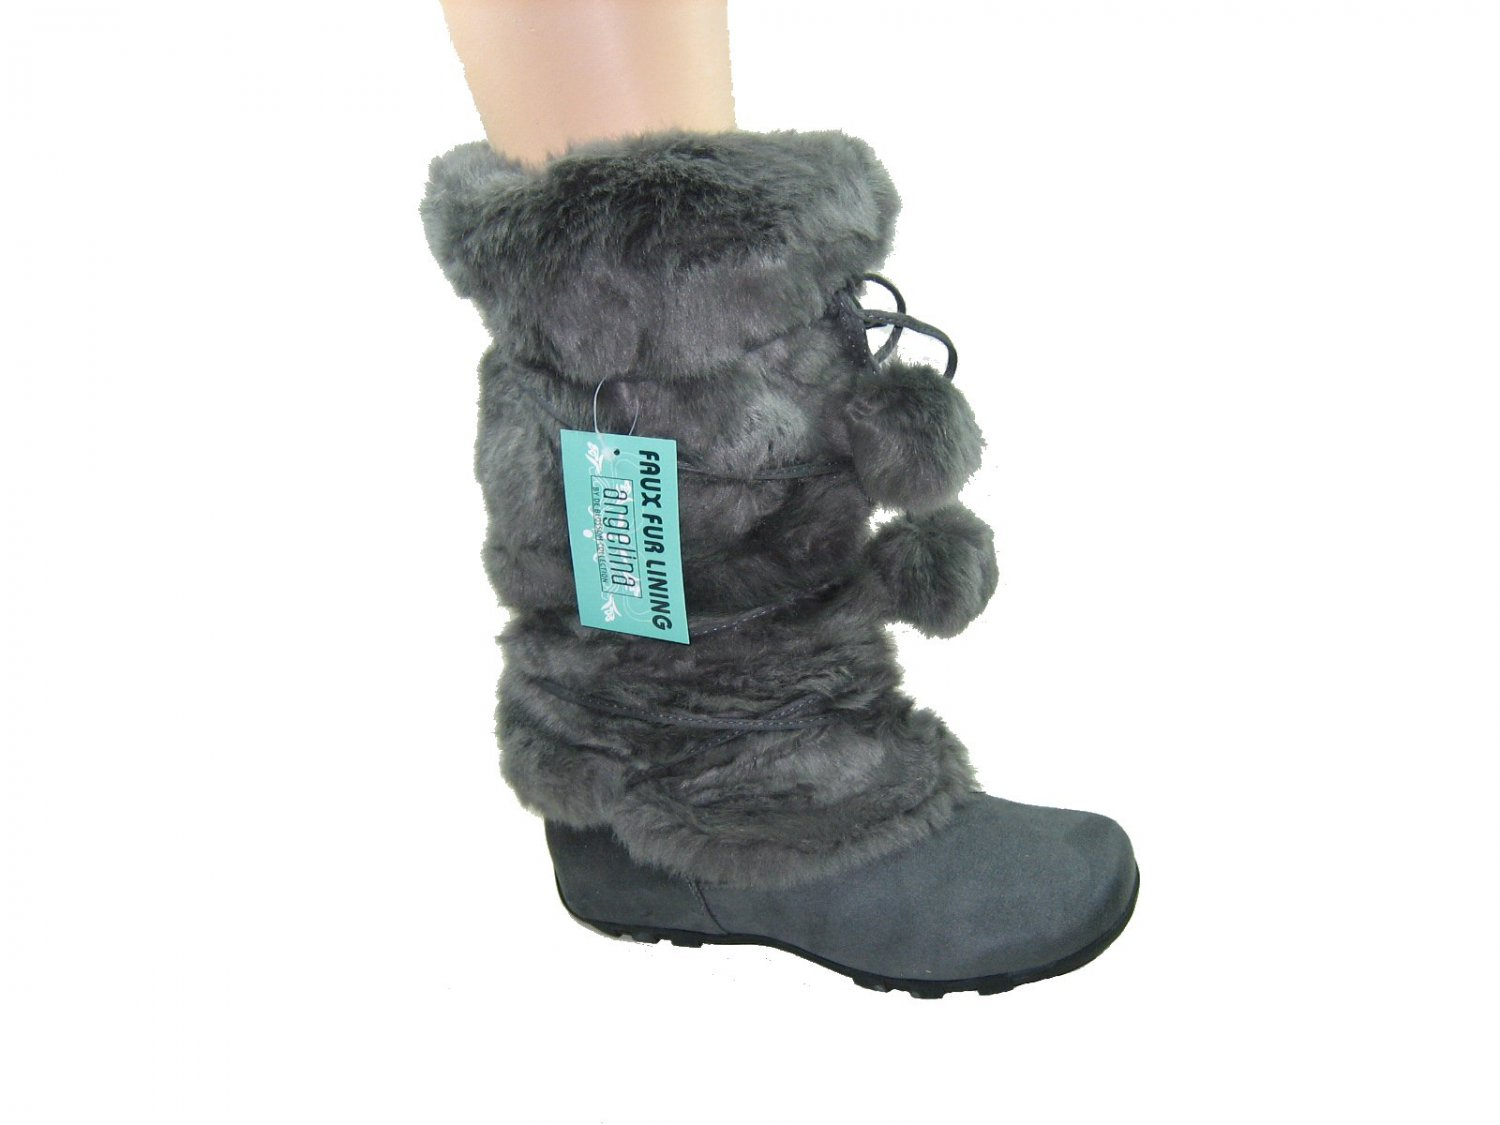 Blossom women's fashion gray faux suede mid-calf faux fur pom pom winter boots size 7